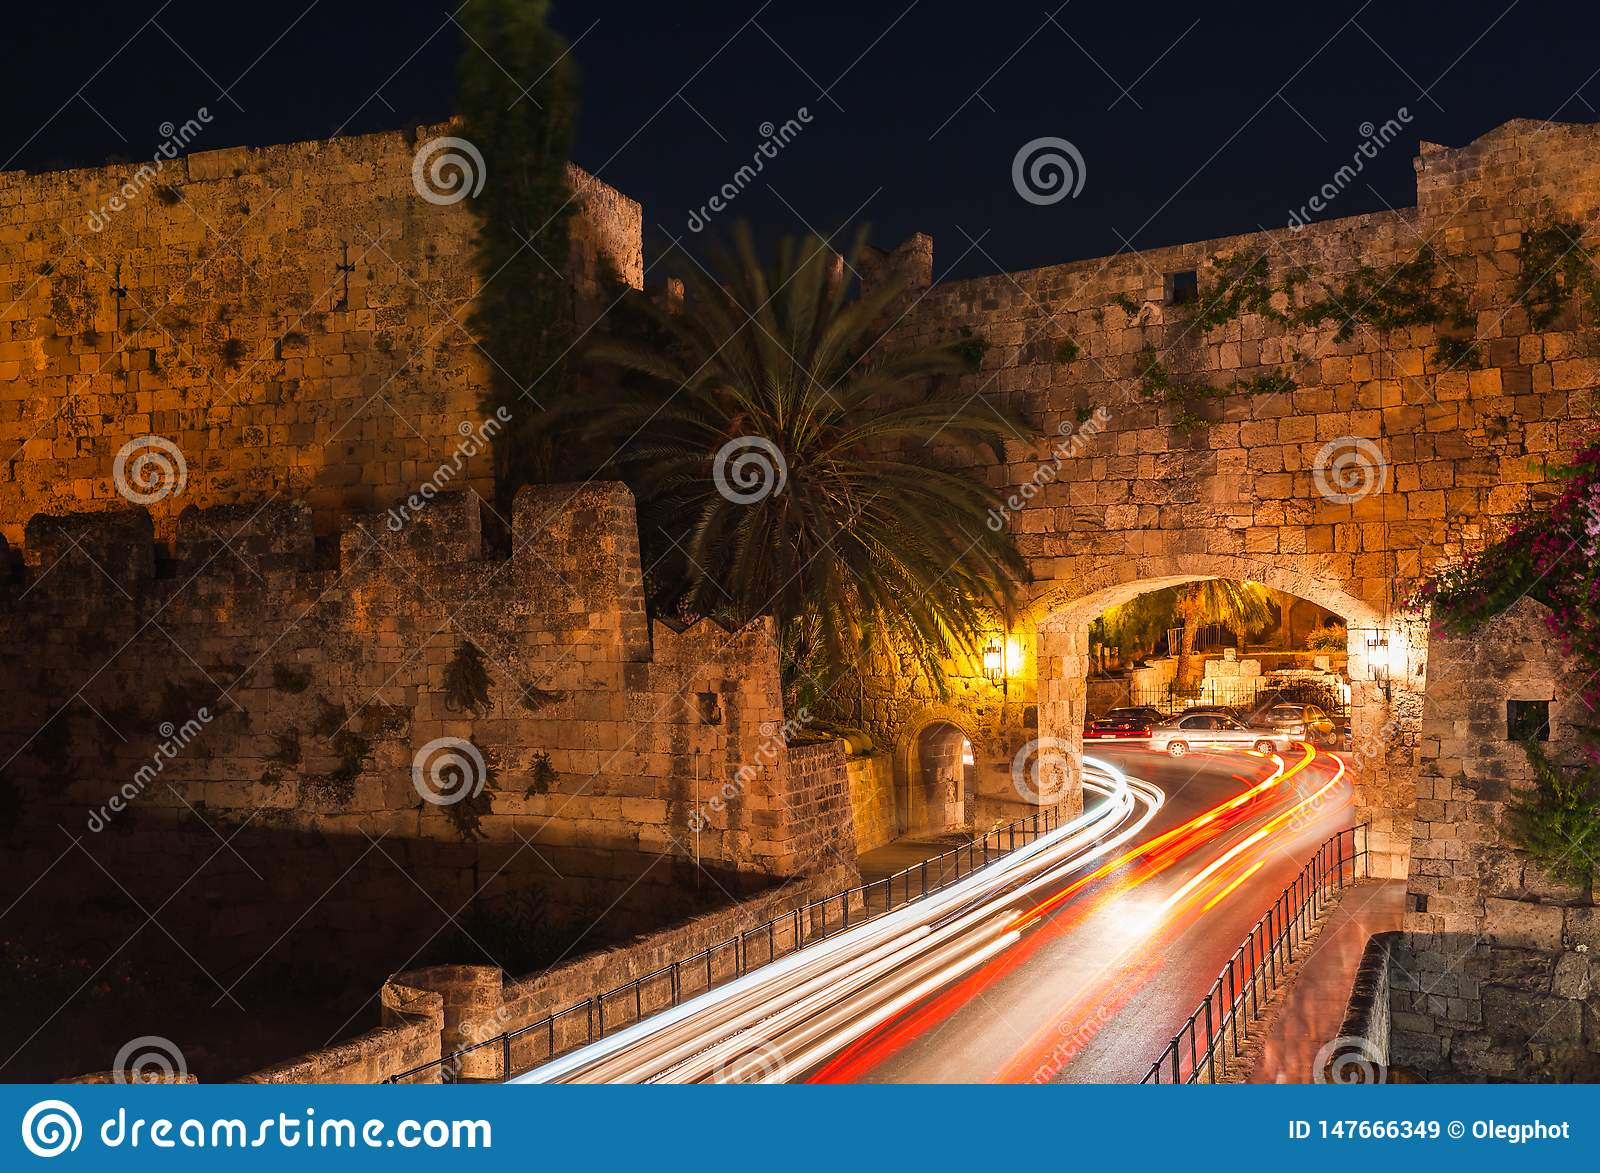 Night photo of ancient street in Rhodes city on Rhodes island, Dodecanese, Greece. Stone walls and bright night lights. Famous